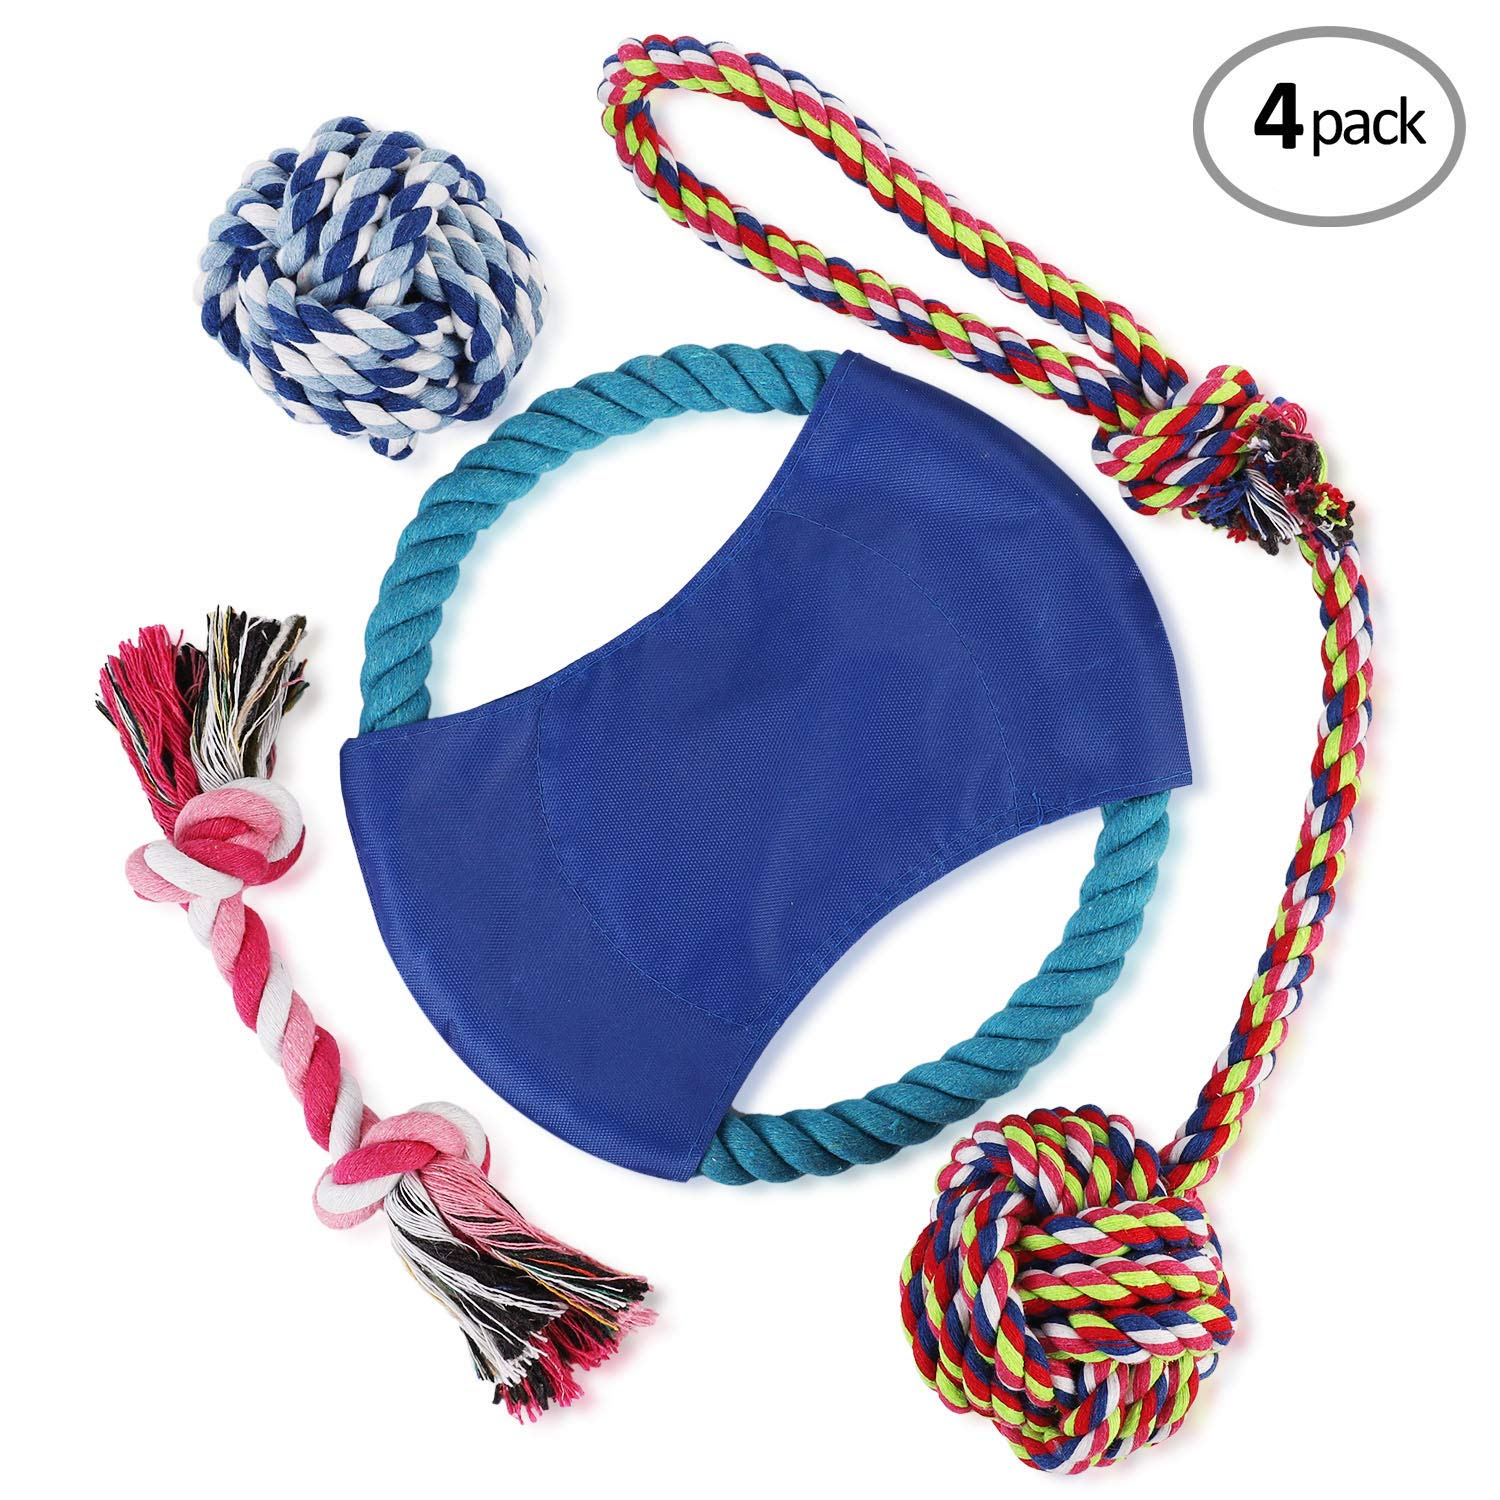 WOT I Dog Rope Toys - Dog Chew Toys Set of 4 -Durable Cotton Dog Toys for Small and Medium Breeds-Rope Toys for Training Tug-of-War Playing-Small Dog Toys-1